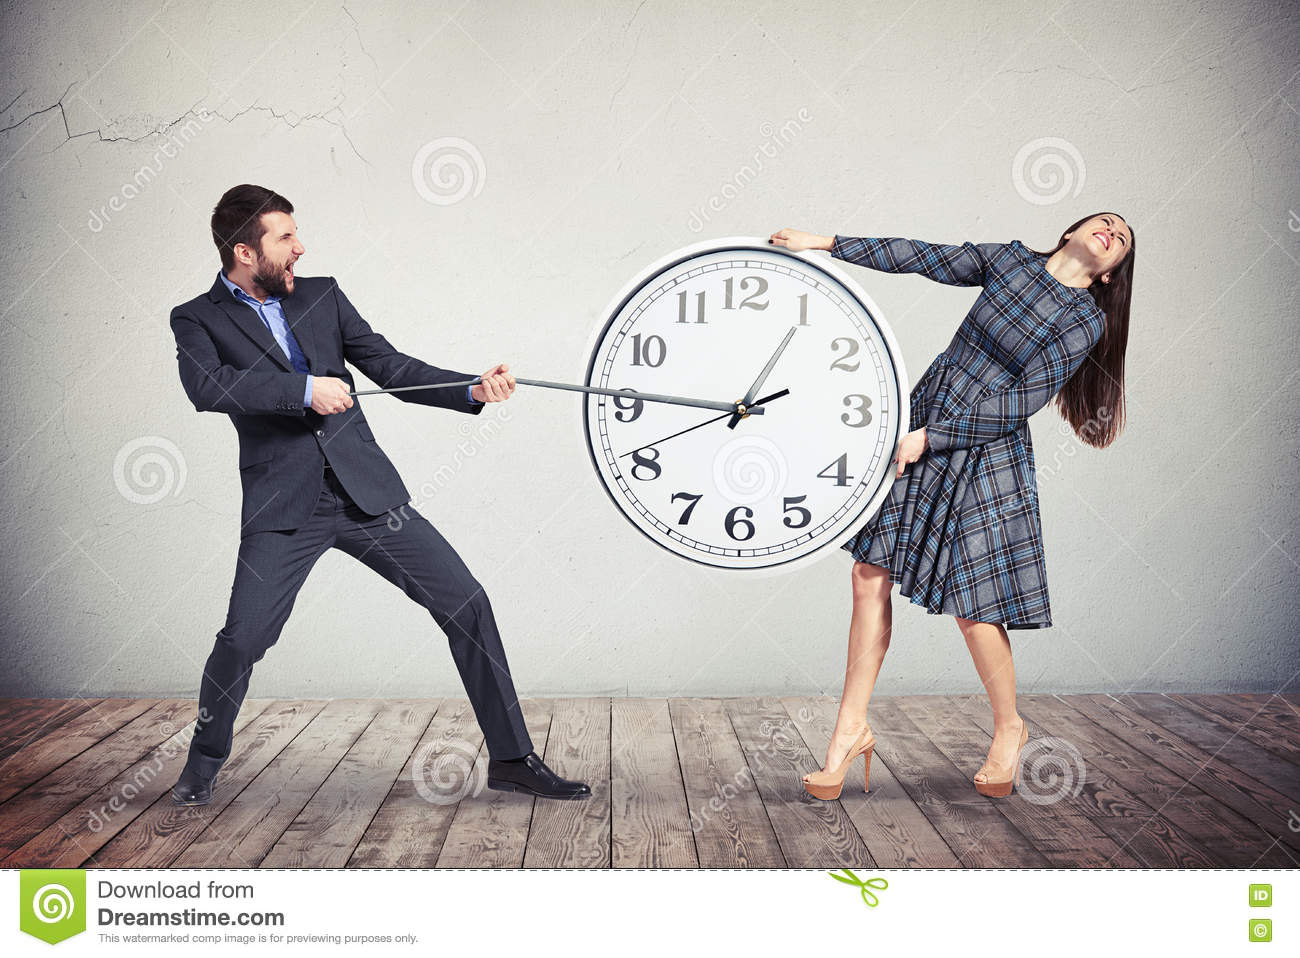 Man and woman are trying to slow down the time